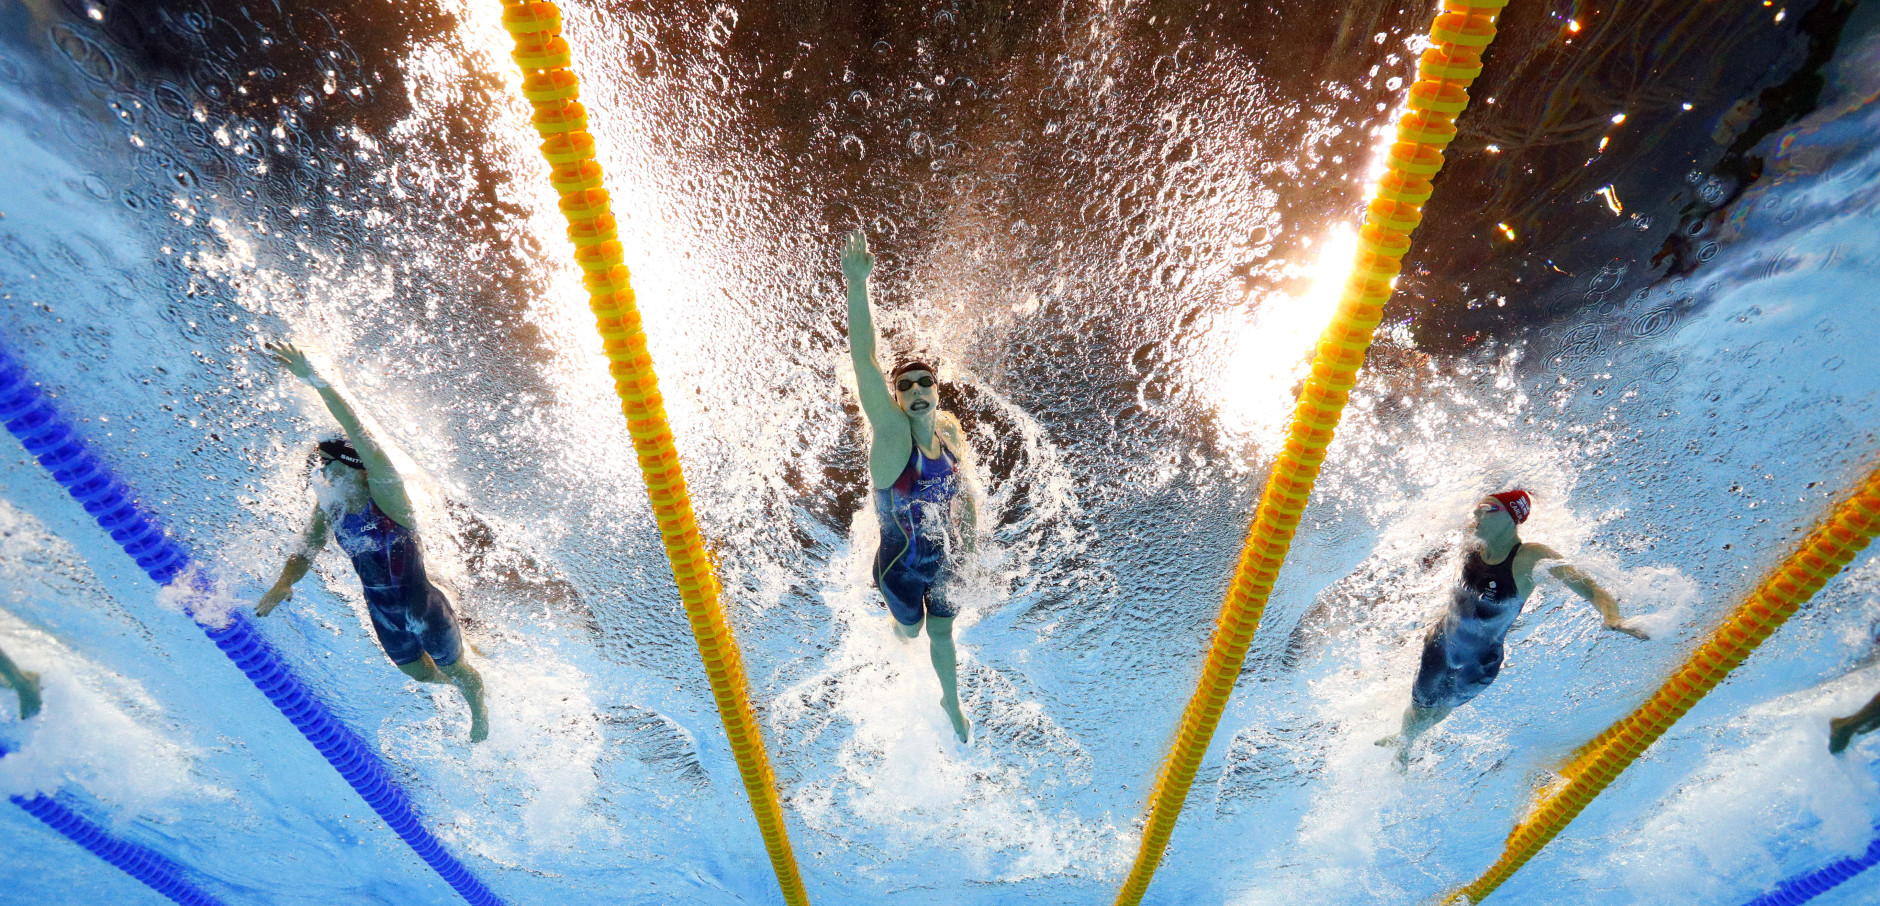 United States' Katie Ledecky, center, competes in the final of the women's 400-meter freestyle during the swimming competitions at the 2016 Summer Olympics, Sunday, Aug. 7, 2016, in Rio de Janeiro, Brazil. (AP Photo/David J. Phillip)